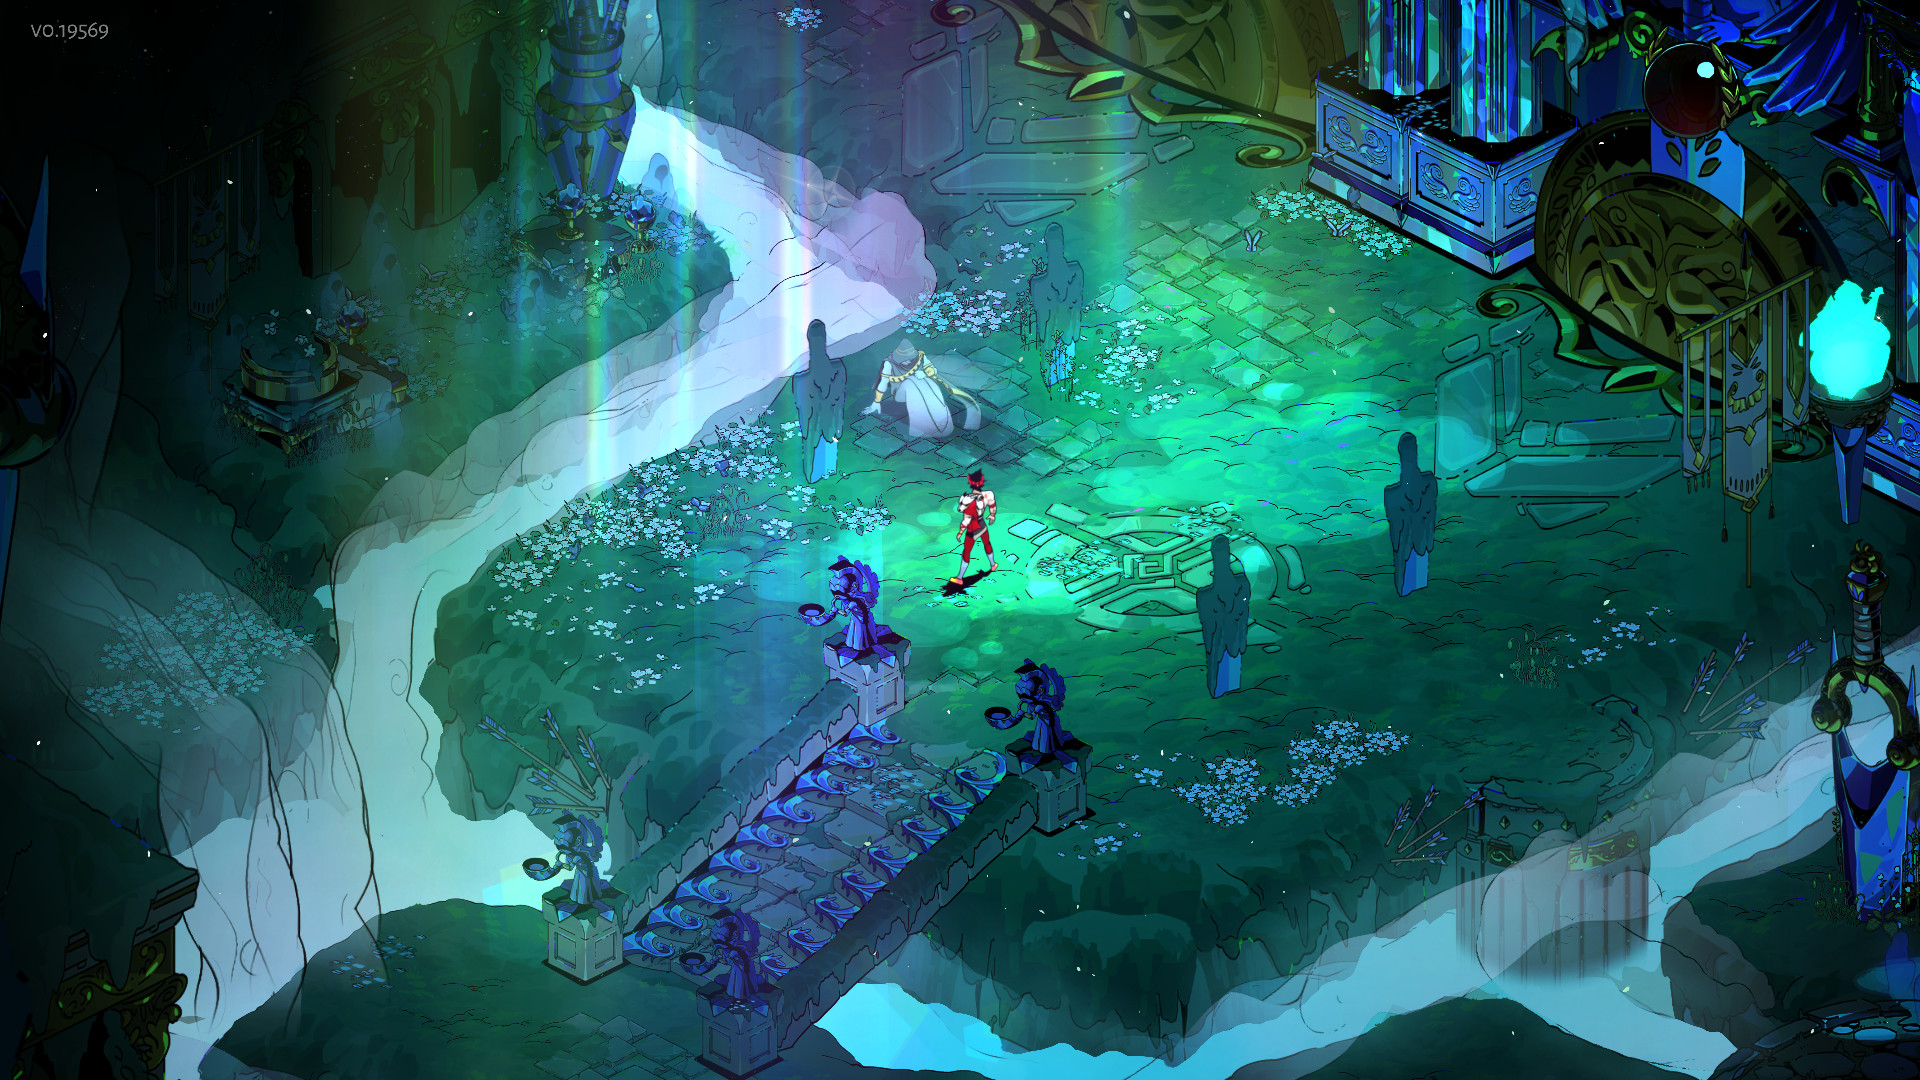 Bastion devs launch dungeon crawler Hades into Early Access this week